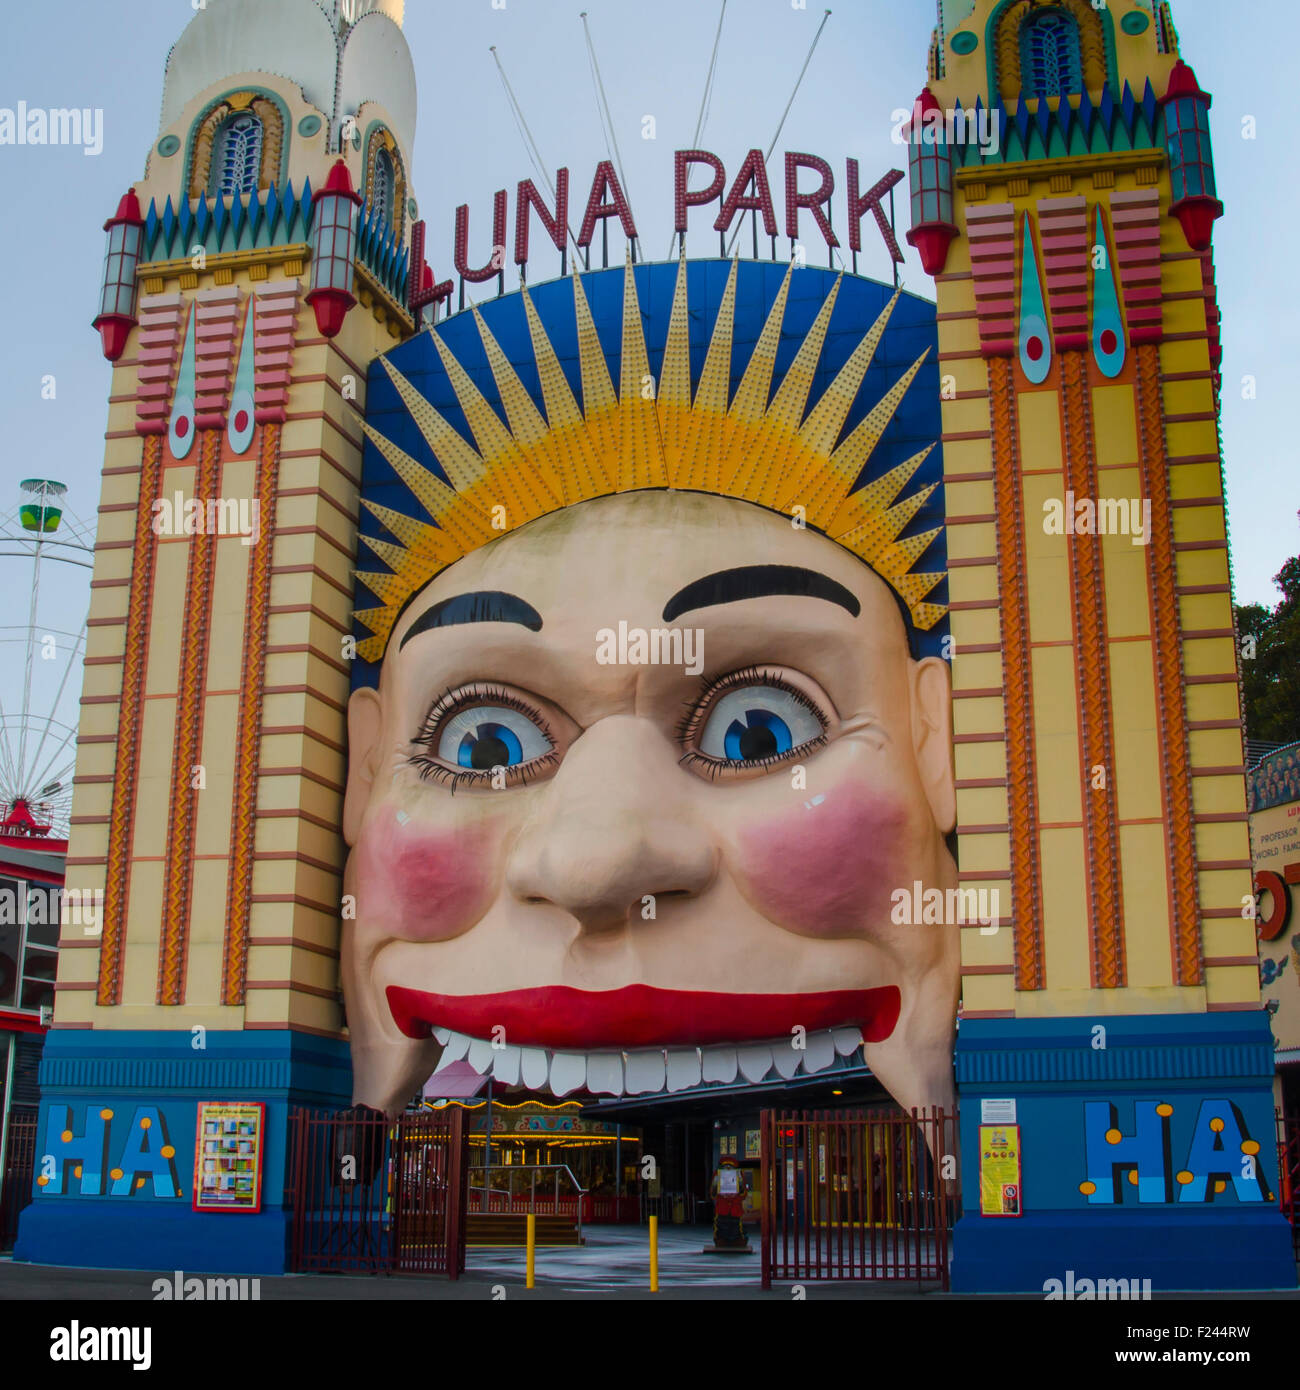 Sydney's Luna Park amusement park Stock Photo